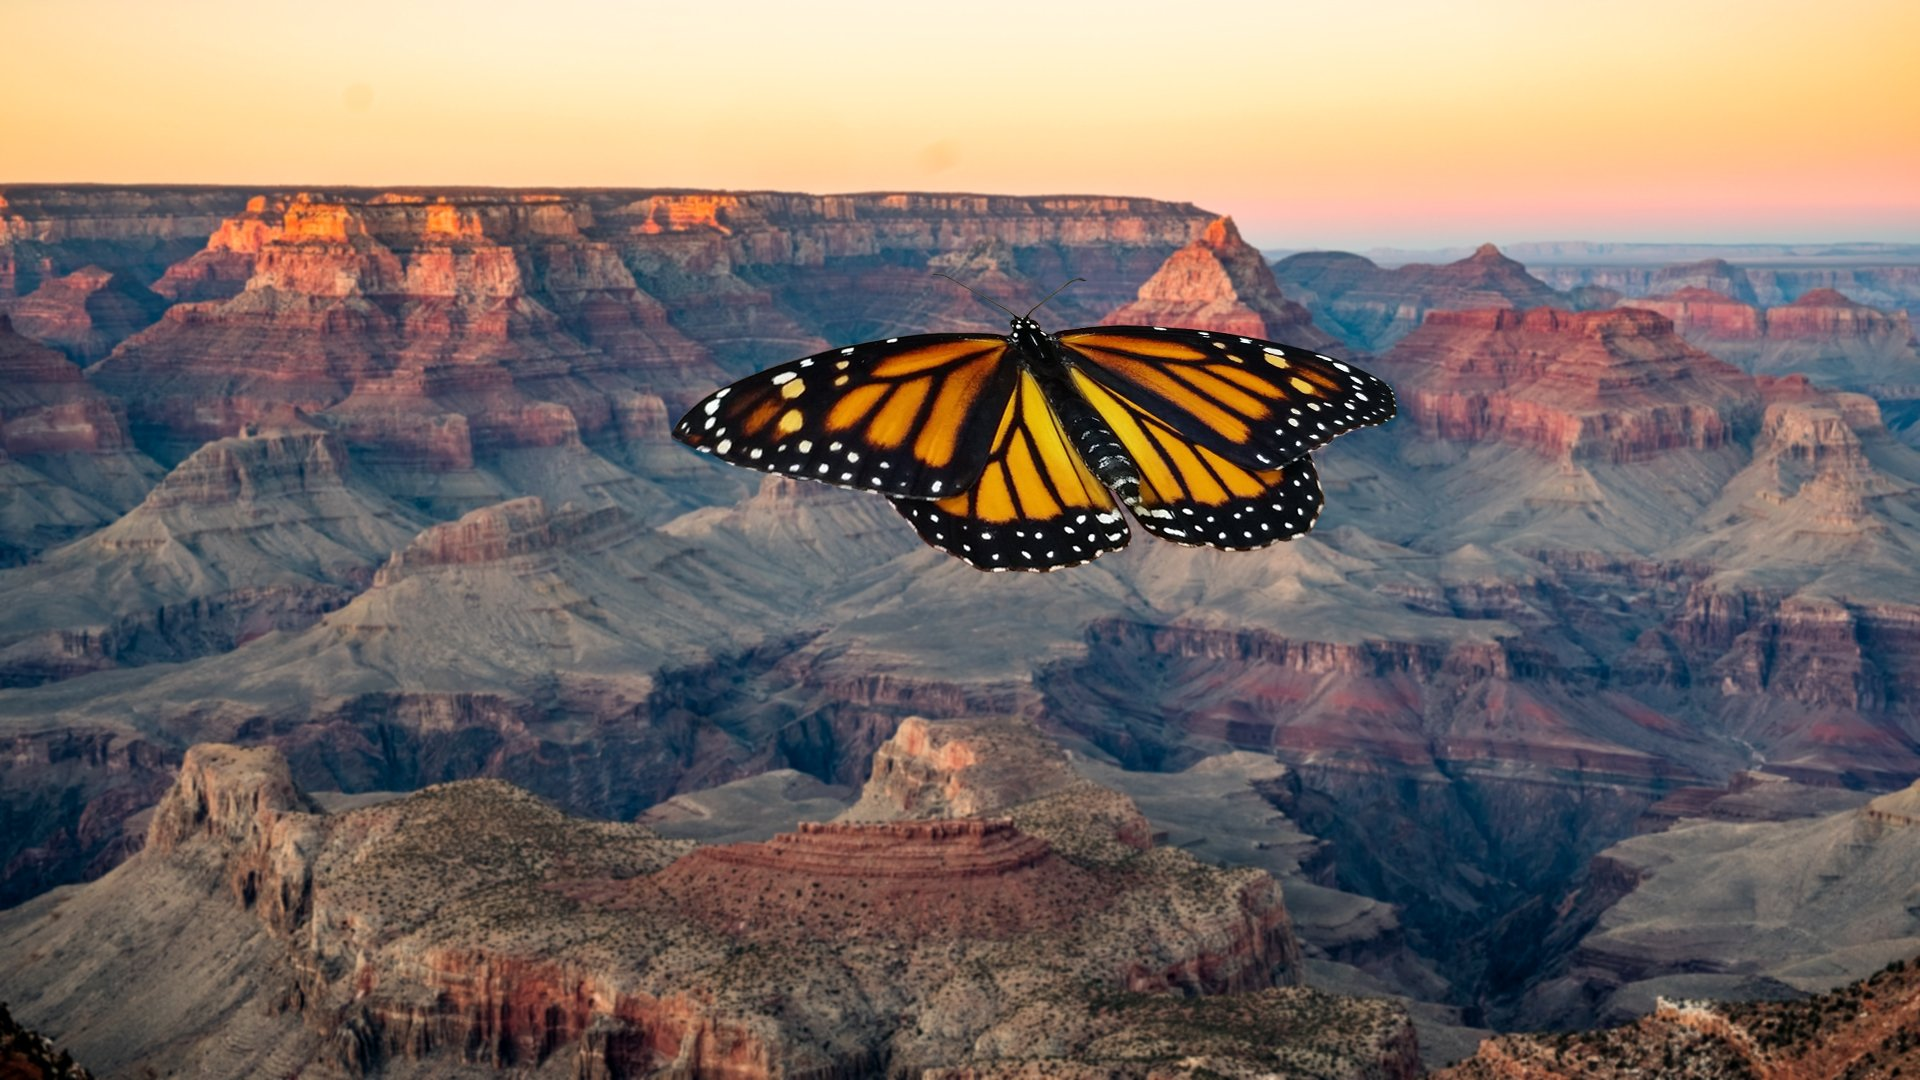 Image - Butterfly over the Grand Canyon